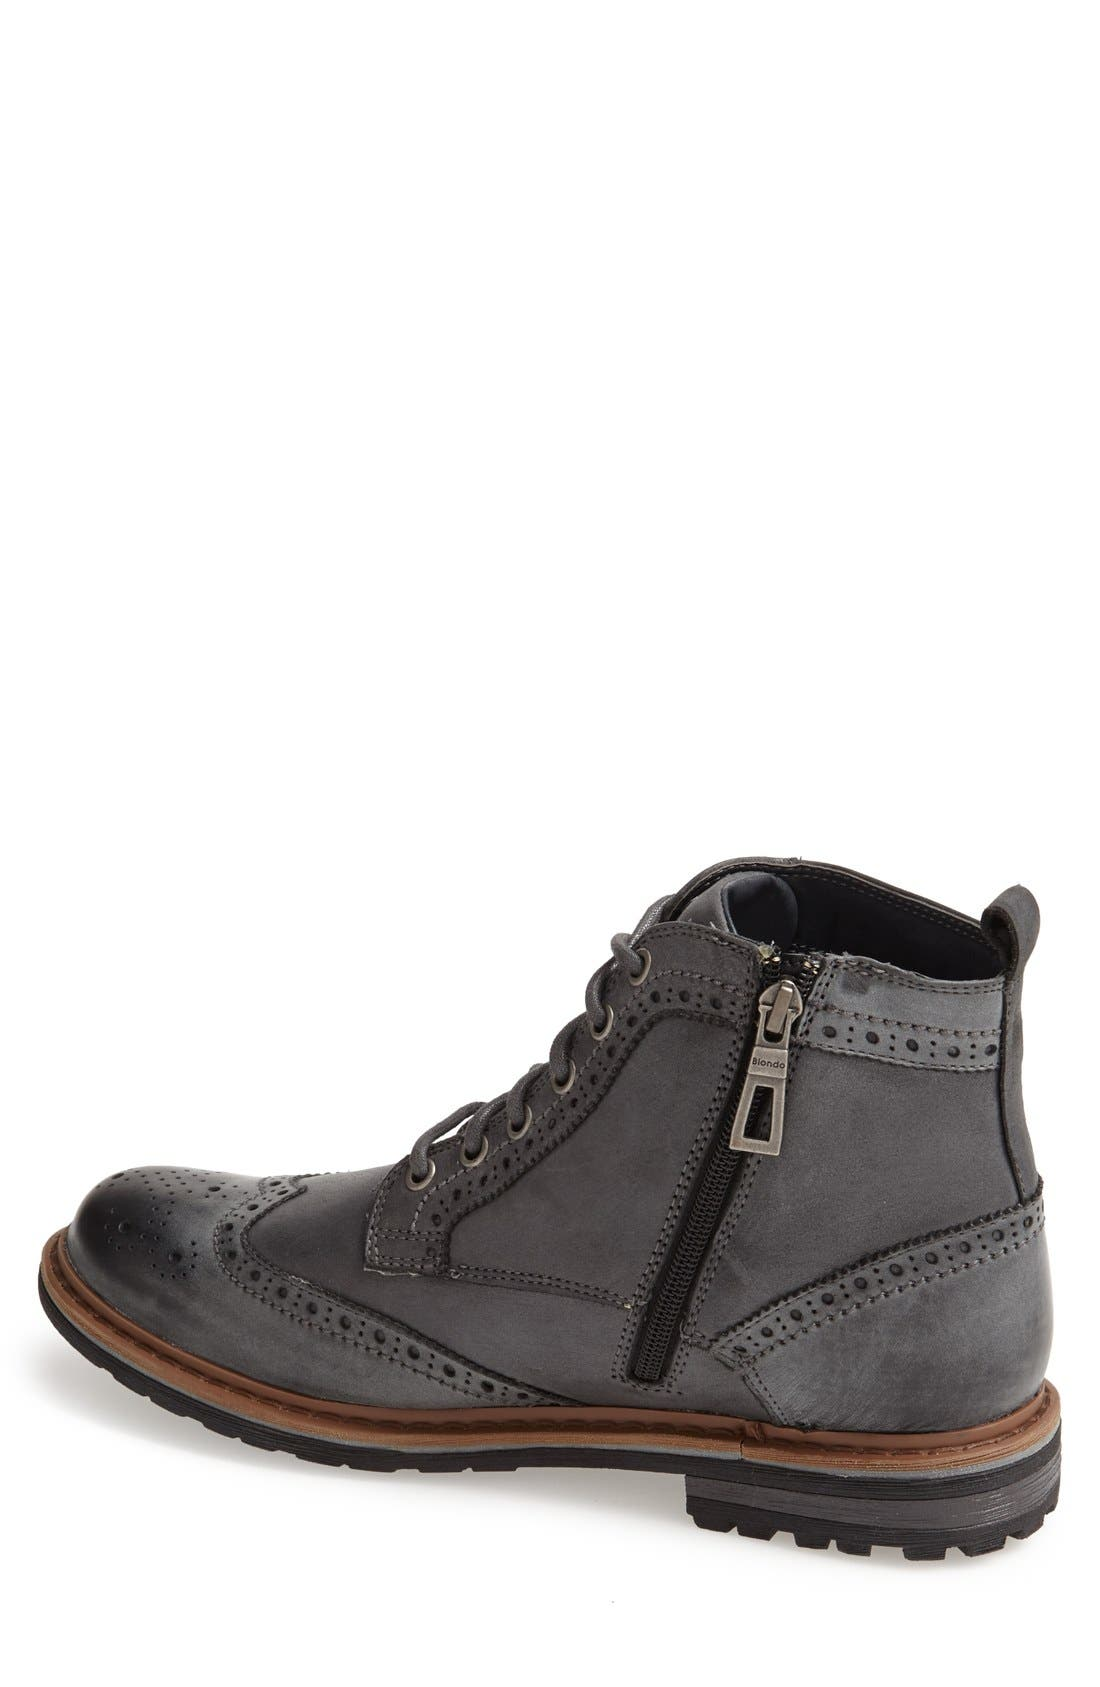 'Damien' Waterproof Wingtip Boot,                             Alternate thumbnail 2, color,                             021